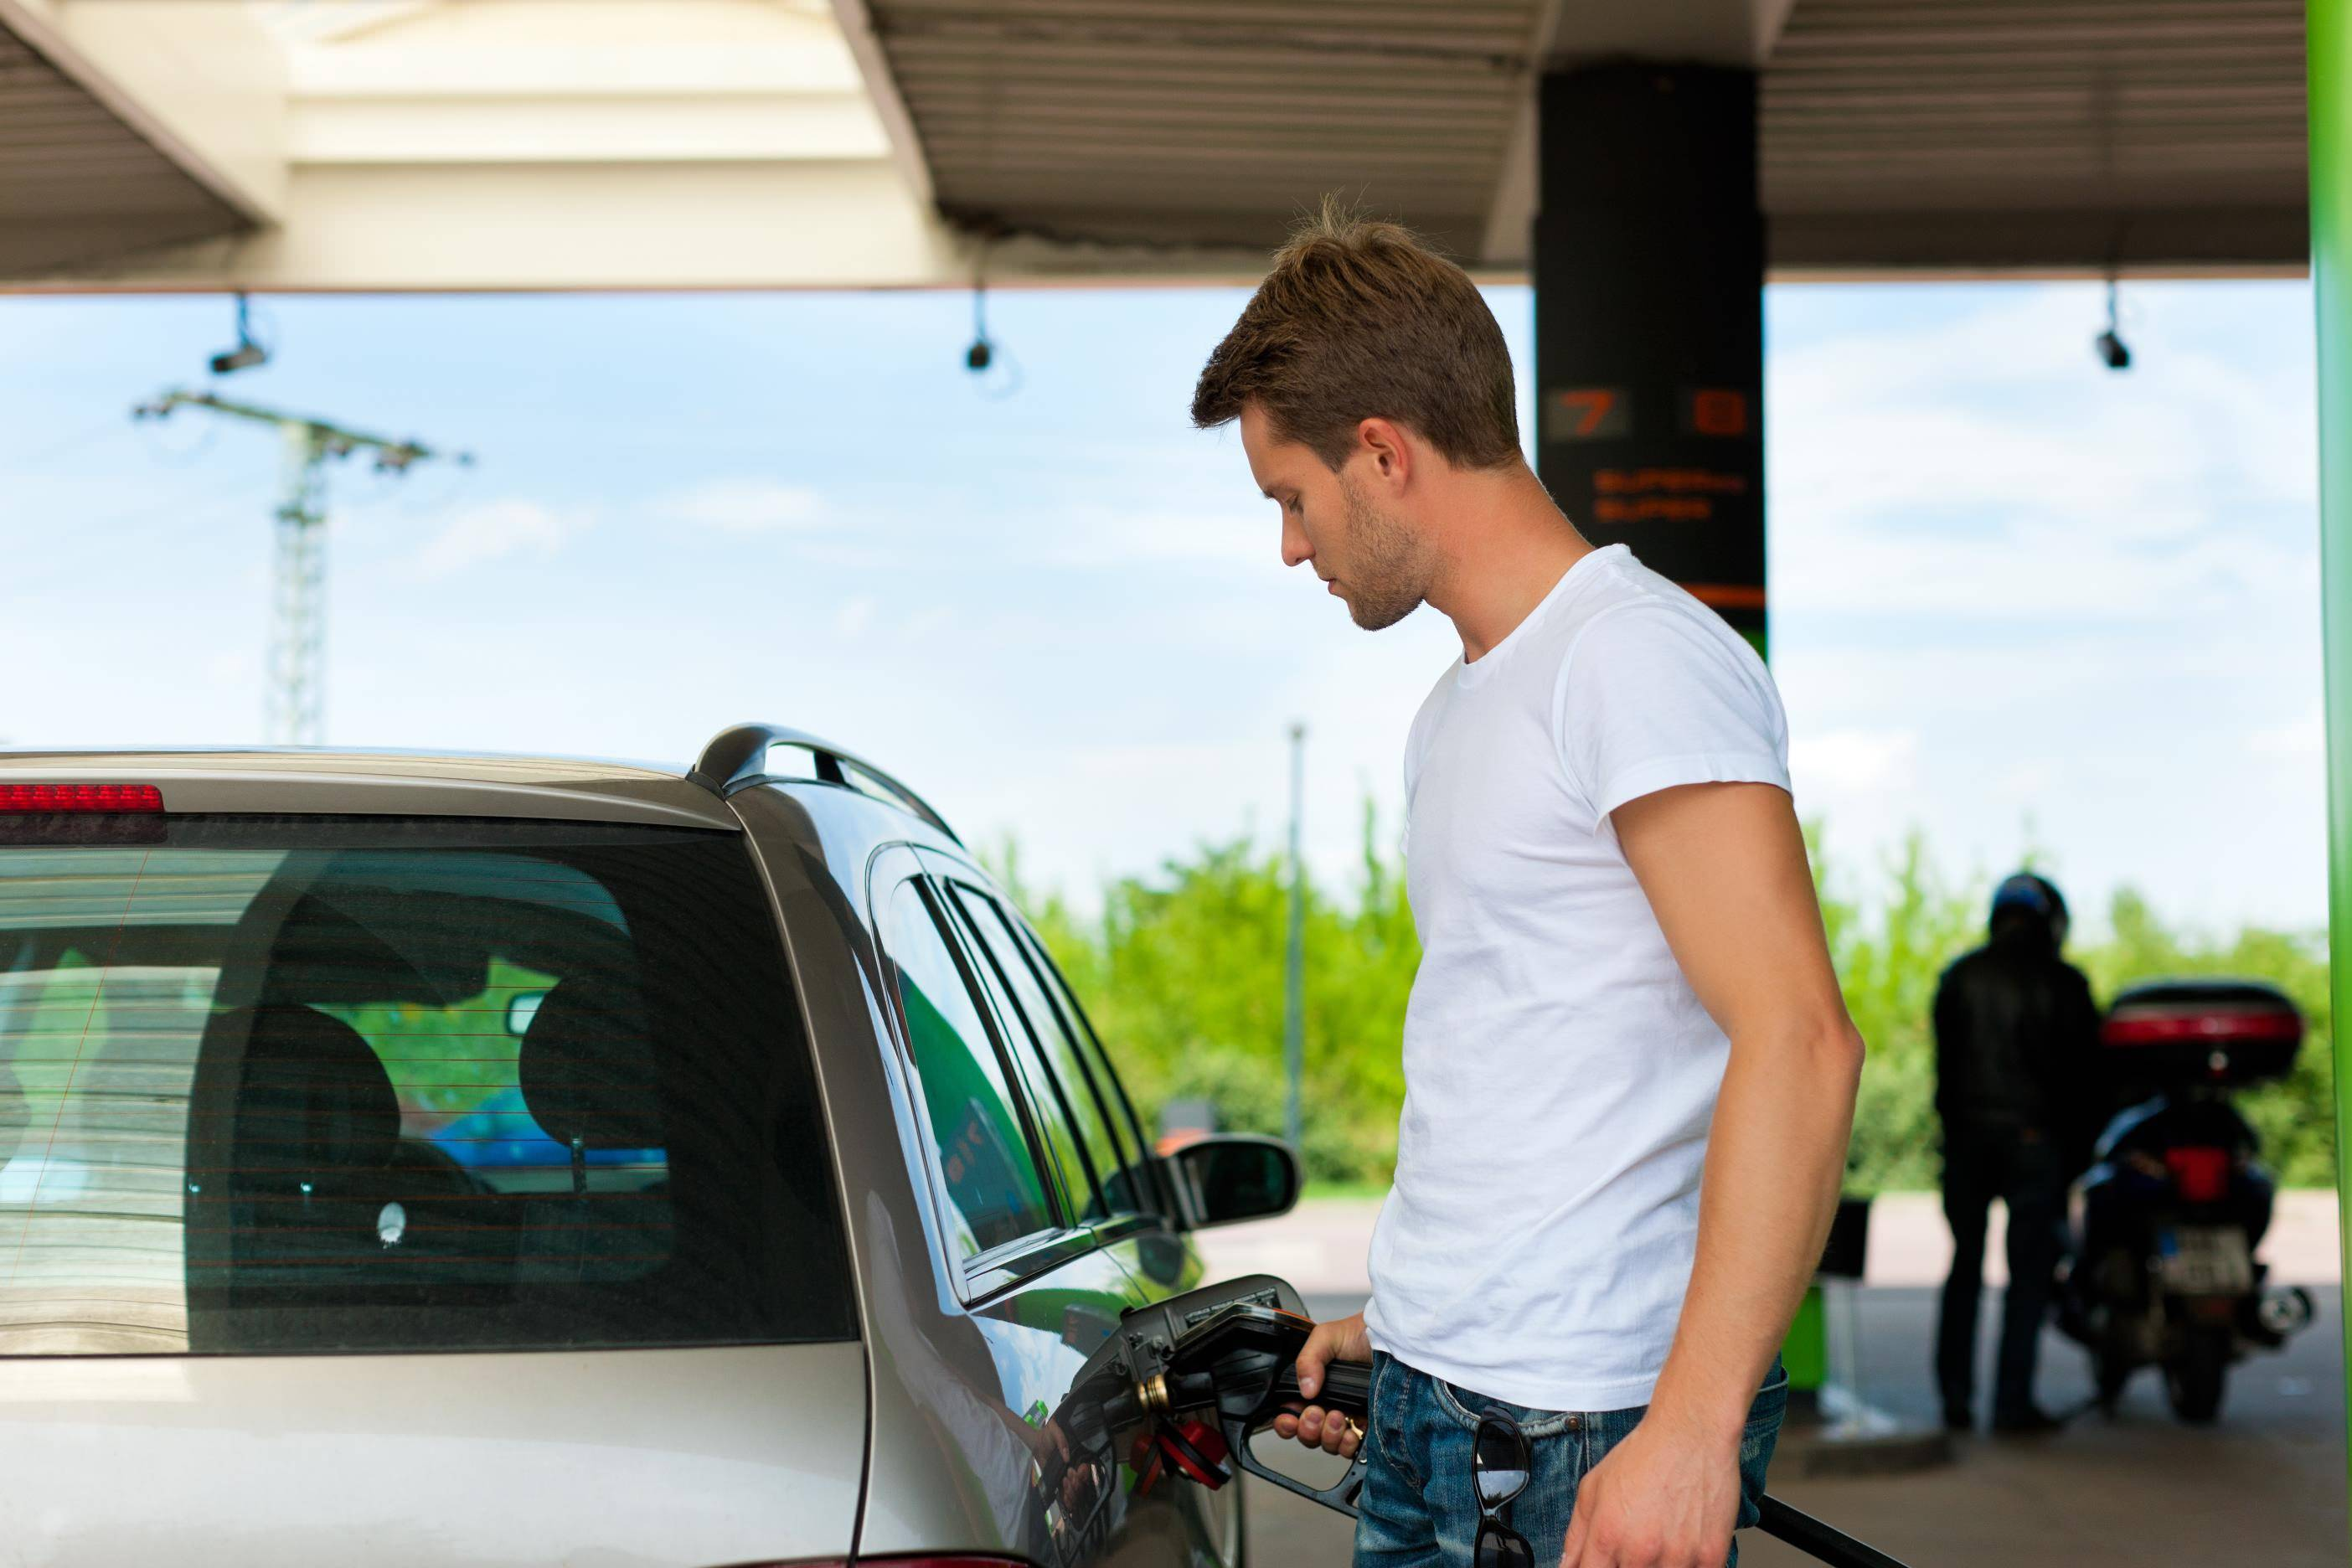 image of a person filling up their car with petrol